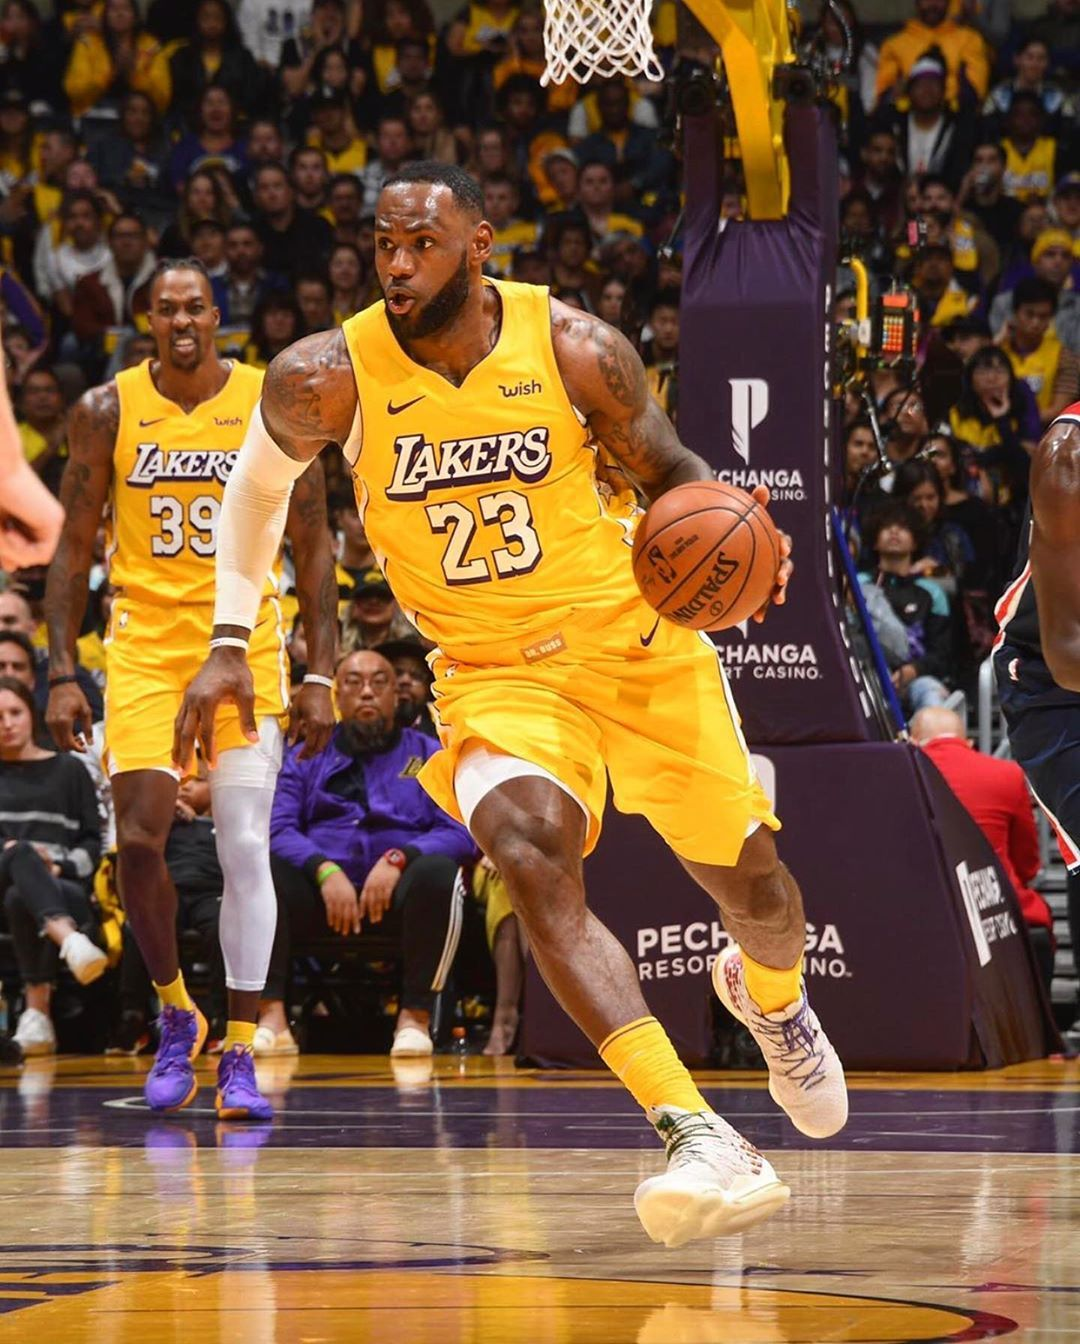 Lebron James On Instagram Final The La Lakers Win Their 10th Straight Game After Defeating Washington 125 103 Lebron James Playe Lebron James Lakers Kobe Bryant Lebron James La Lakers